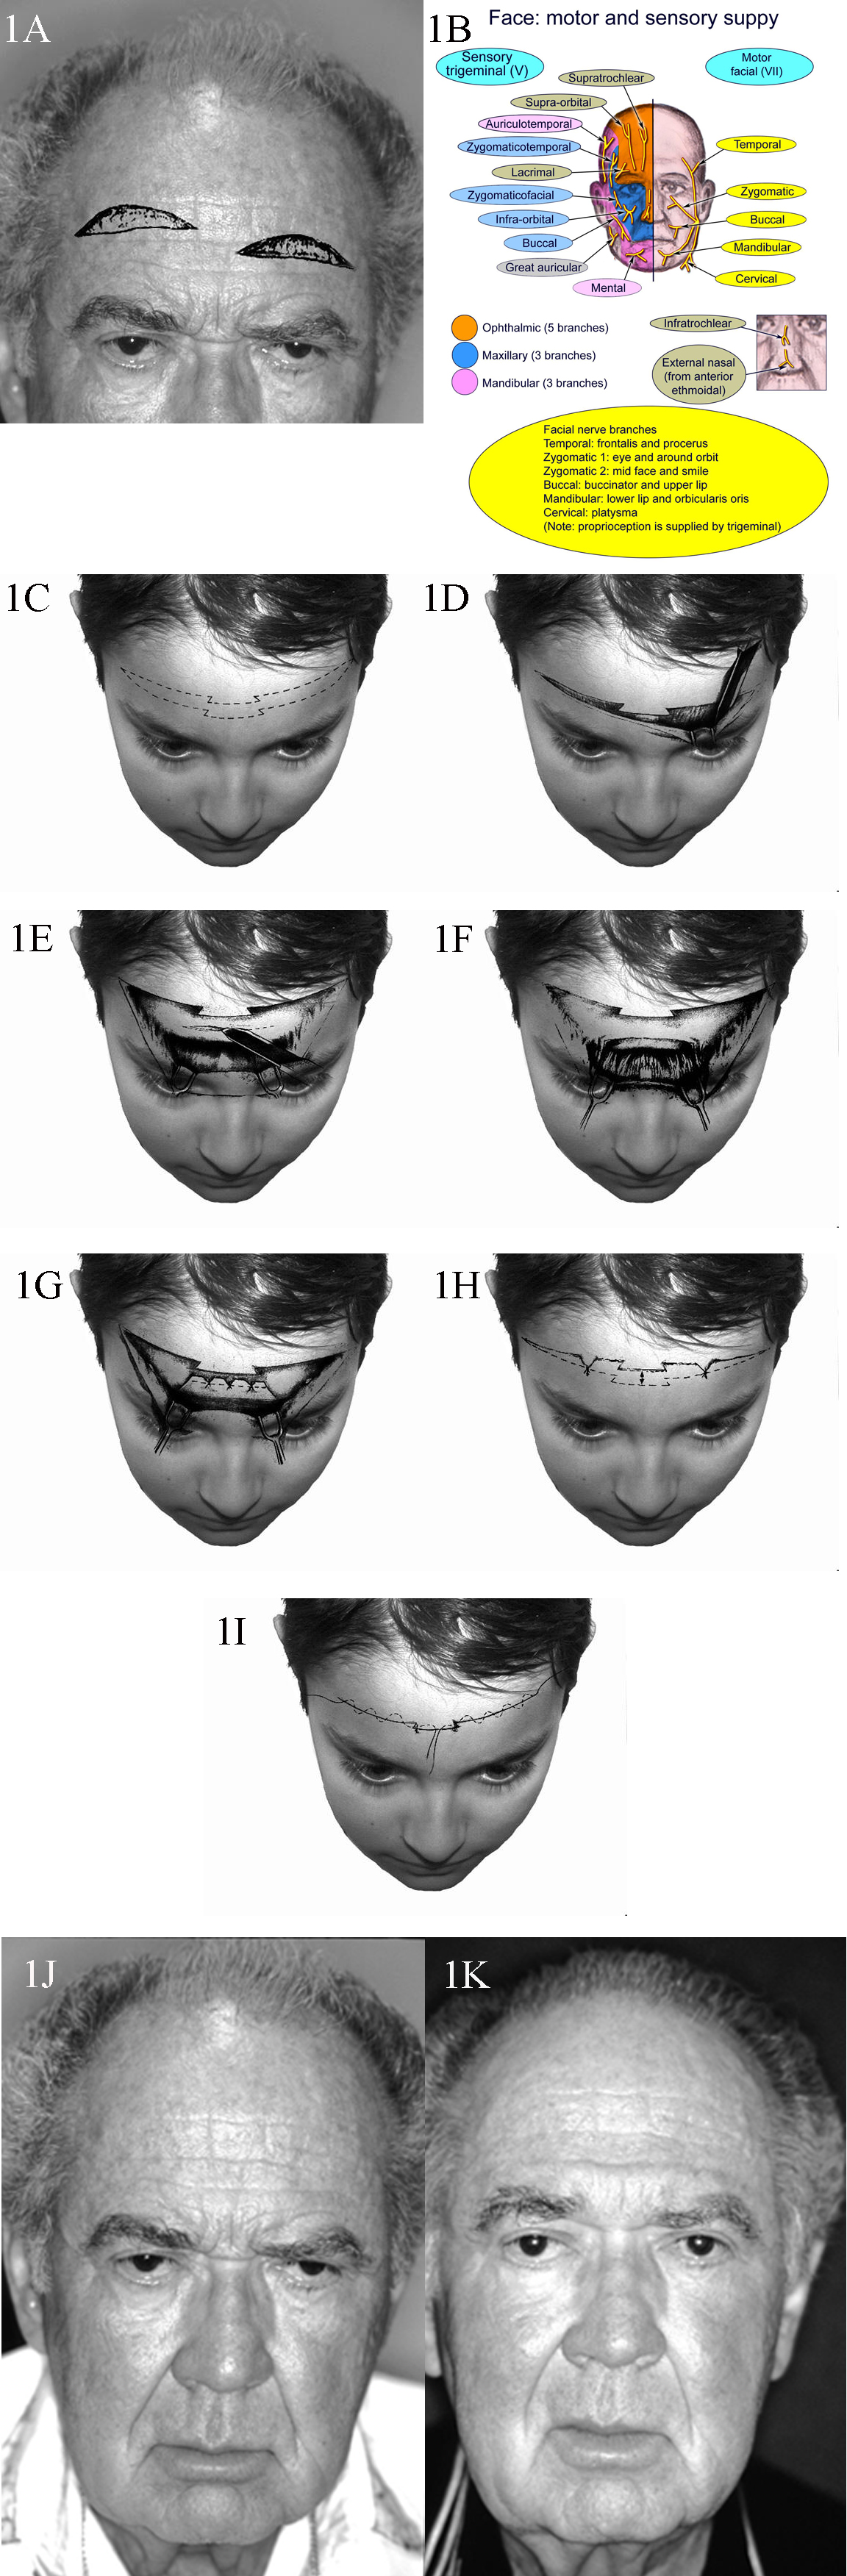 1A. Patient with typical upper lid ptosis and severe brow ptosis. Incisions for midforehead lift may be staggered as shown here to prevent a long horizontal scar. 1B. Sensory and motor nerve supply of the face. 1C. Transverse forehead incisions may be staggered or be broken up as shown to improve the final scar. 1D. Dissection performed in the subcutaeneous plane. 1E. Transverse incisions are made in the galea to access the corrugator and procerus muscles. These incisions are kept in the middle to prevent injury to the supraorbital nerve branches. 1F. Once exposed, the corrugator and procerus muscles are attenuated. 1G. The galea is shortened as desired and sutures placed. 1H. Elevation of the cutaneous structures is obtained and relevant trimming performed. 1I. Meticulous subcuticular closure is performed with no tension on the skin edges. 1J. A 68-year-old man with markedly overactive corrugator and procerus muscles. 1K. A reasonable elevation of his brows has been achieved.